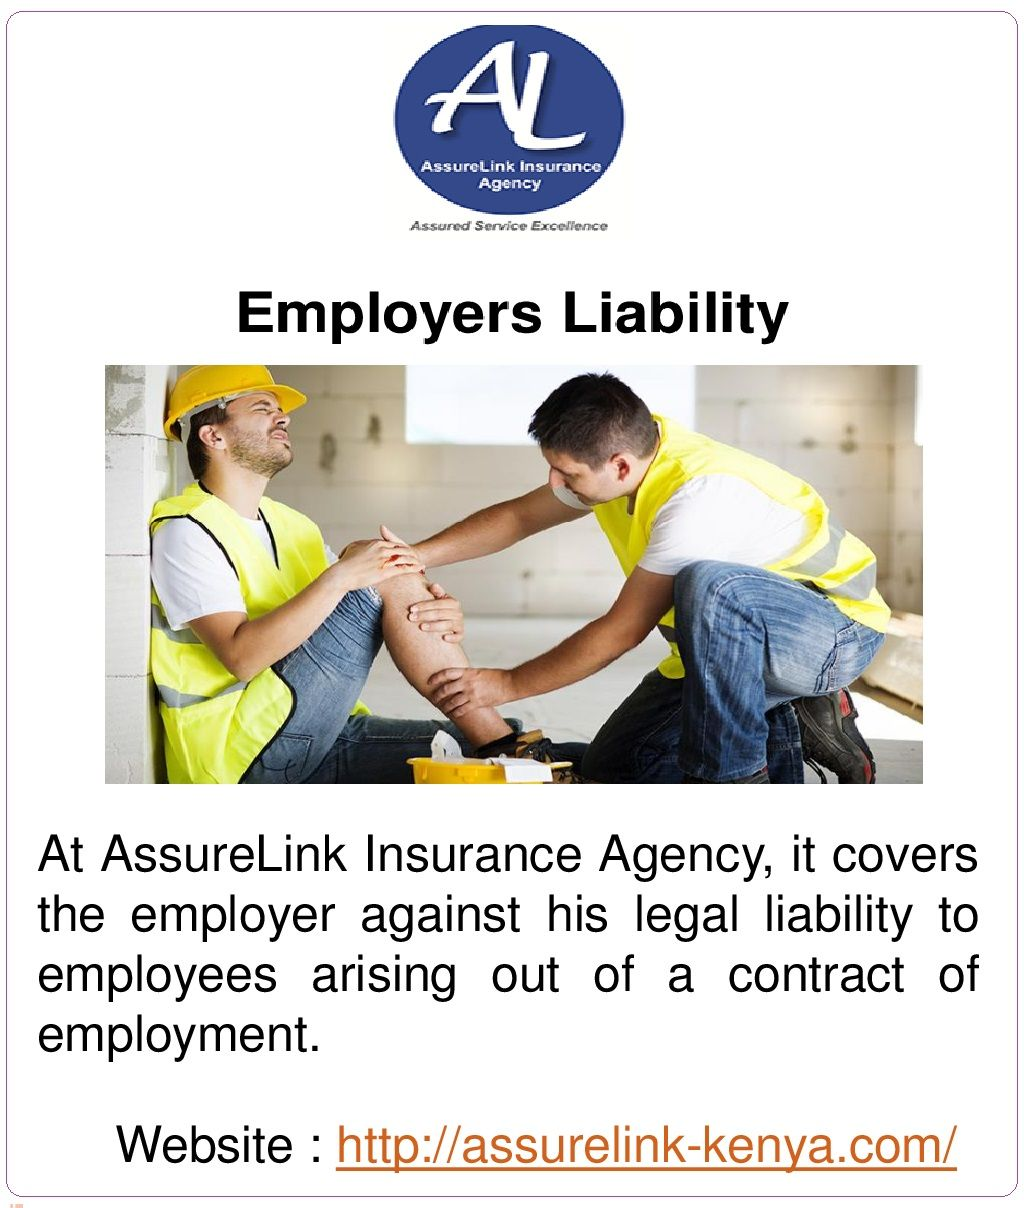 At Assurelink Insurance Agency It Covers The Employer Against His